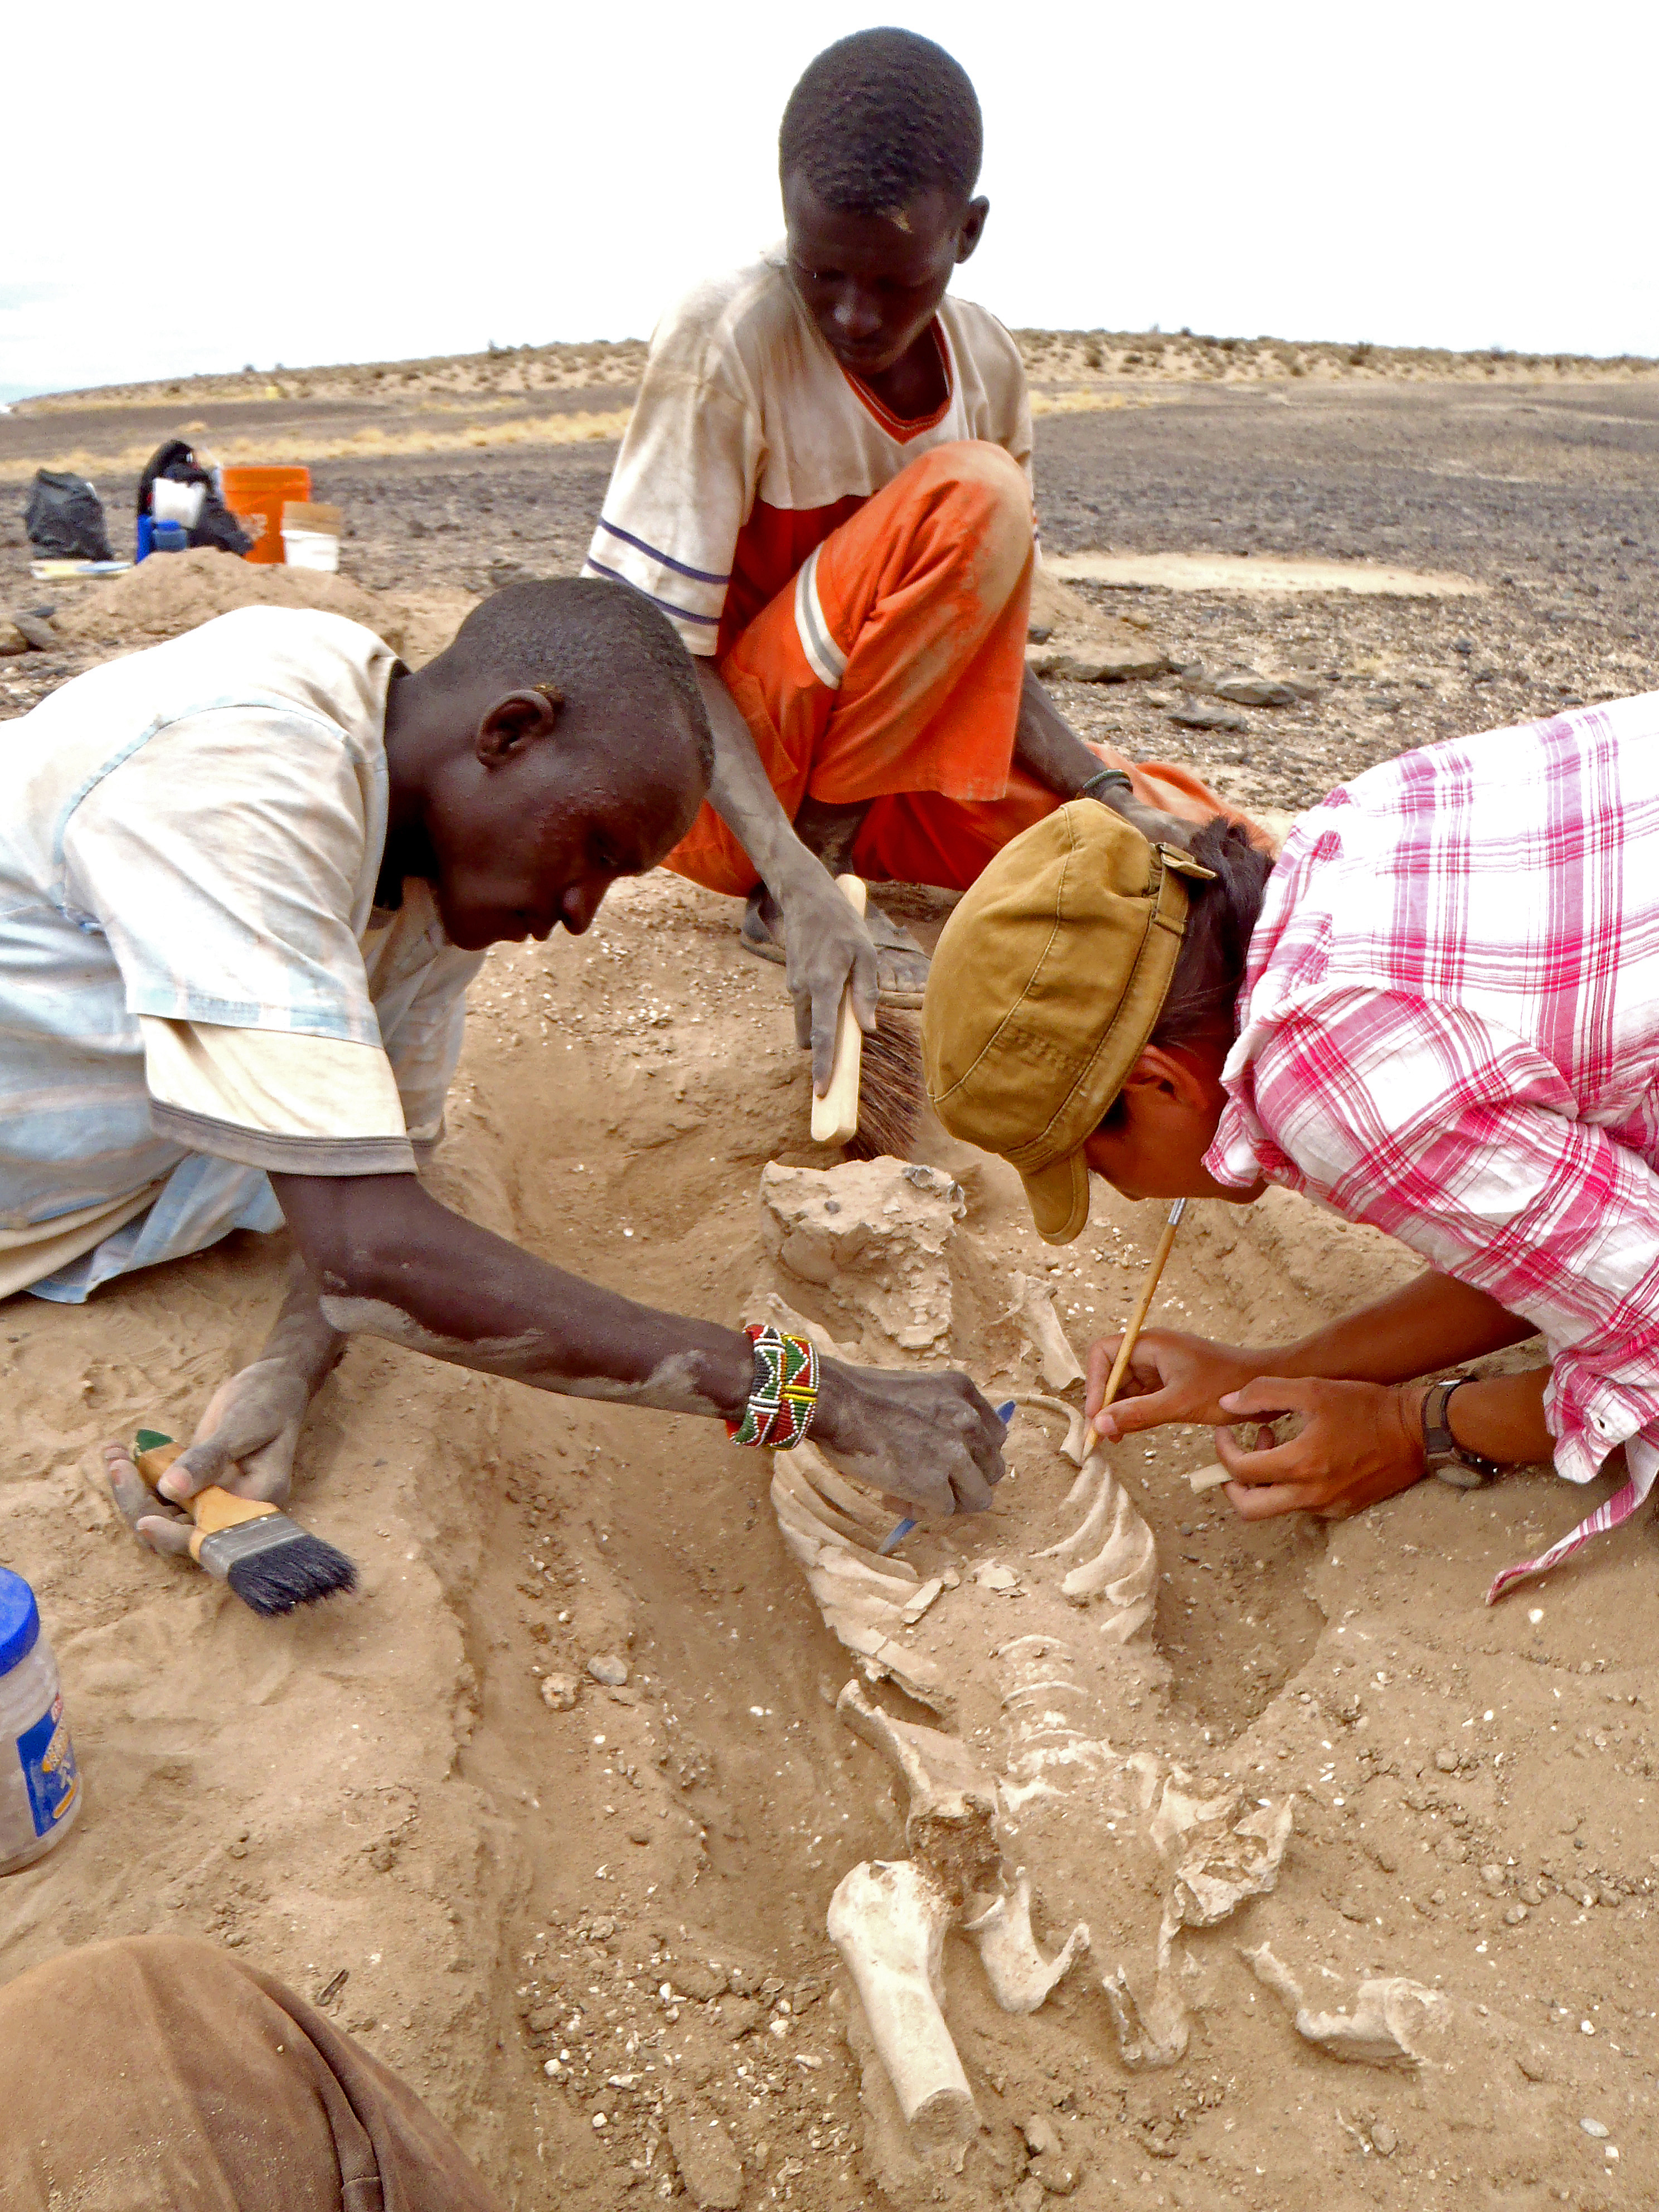 In this August 2012 photo provided by Marta Mirazon Lahr, researcher Frances Rivera, right, Michael Emsugut, left, and Tot Ekulukum excavate a human skeleton at the site of Nataruk, West Turkana, Kenya. This skeleton was that of a woman, found lying on her back, with lesions on her neck vertebrae consistent with a projectile wound. She also had multiple fractures on one of her hands. In a paper released on Jan. 20, 2016, by the Nature Journal, scientists said it's one of the clearest cases of violence between groups among prehistoric hunter-gatherers.